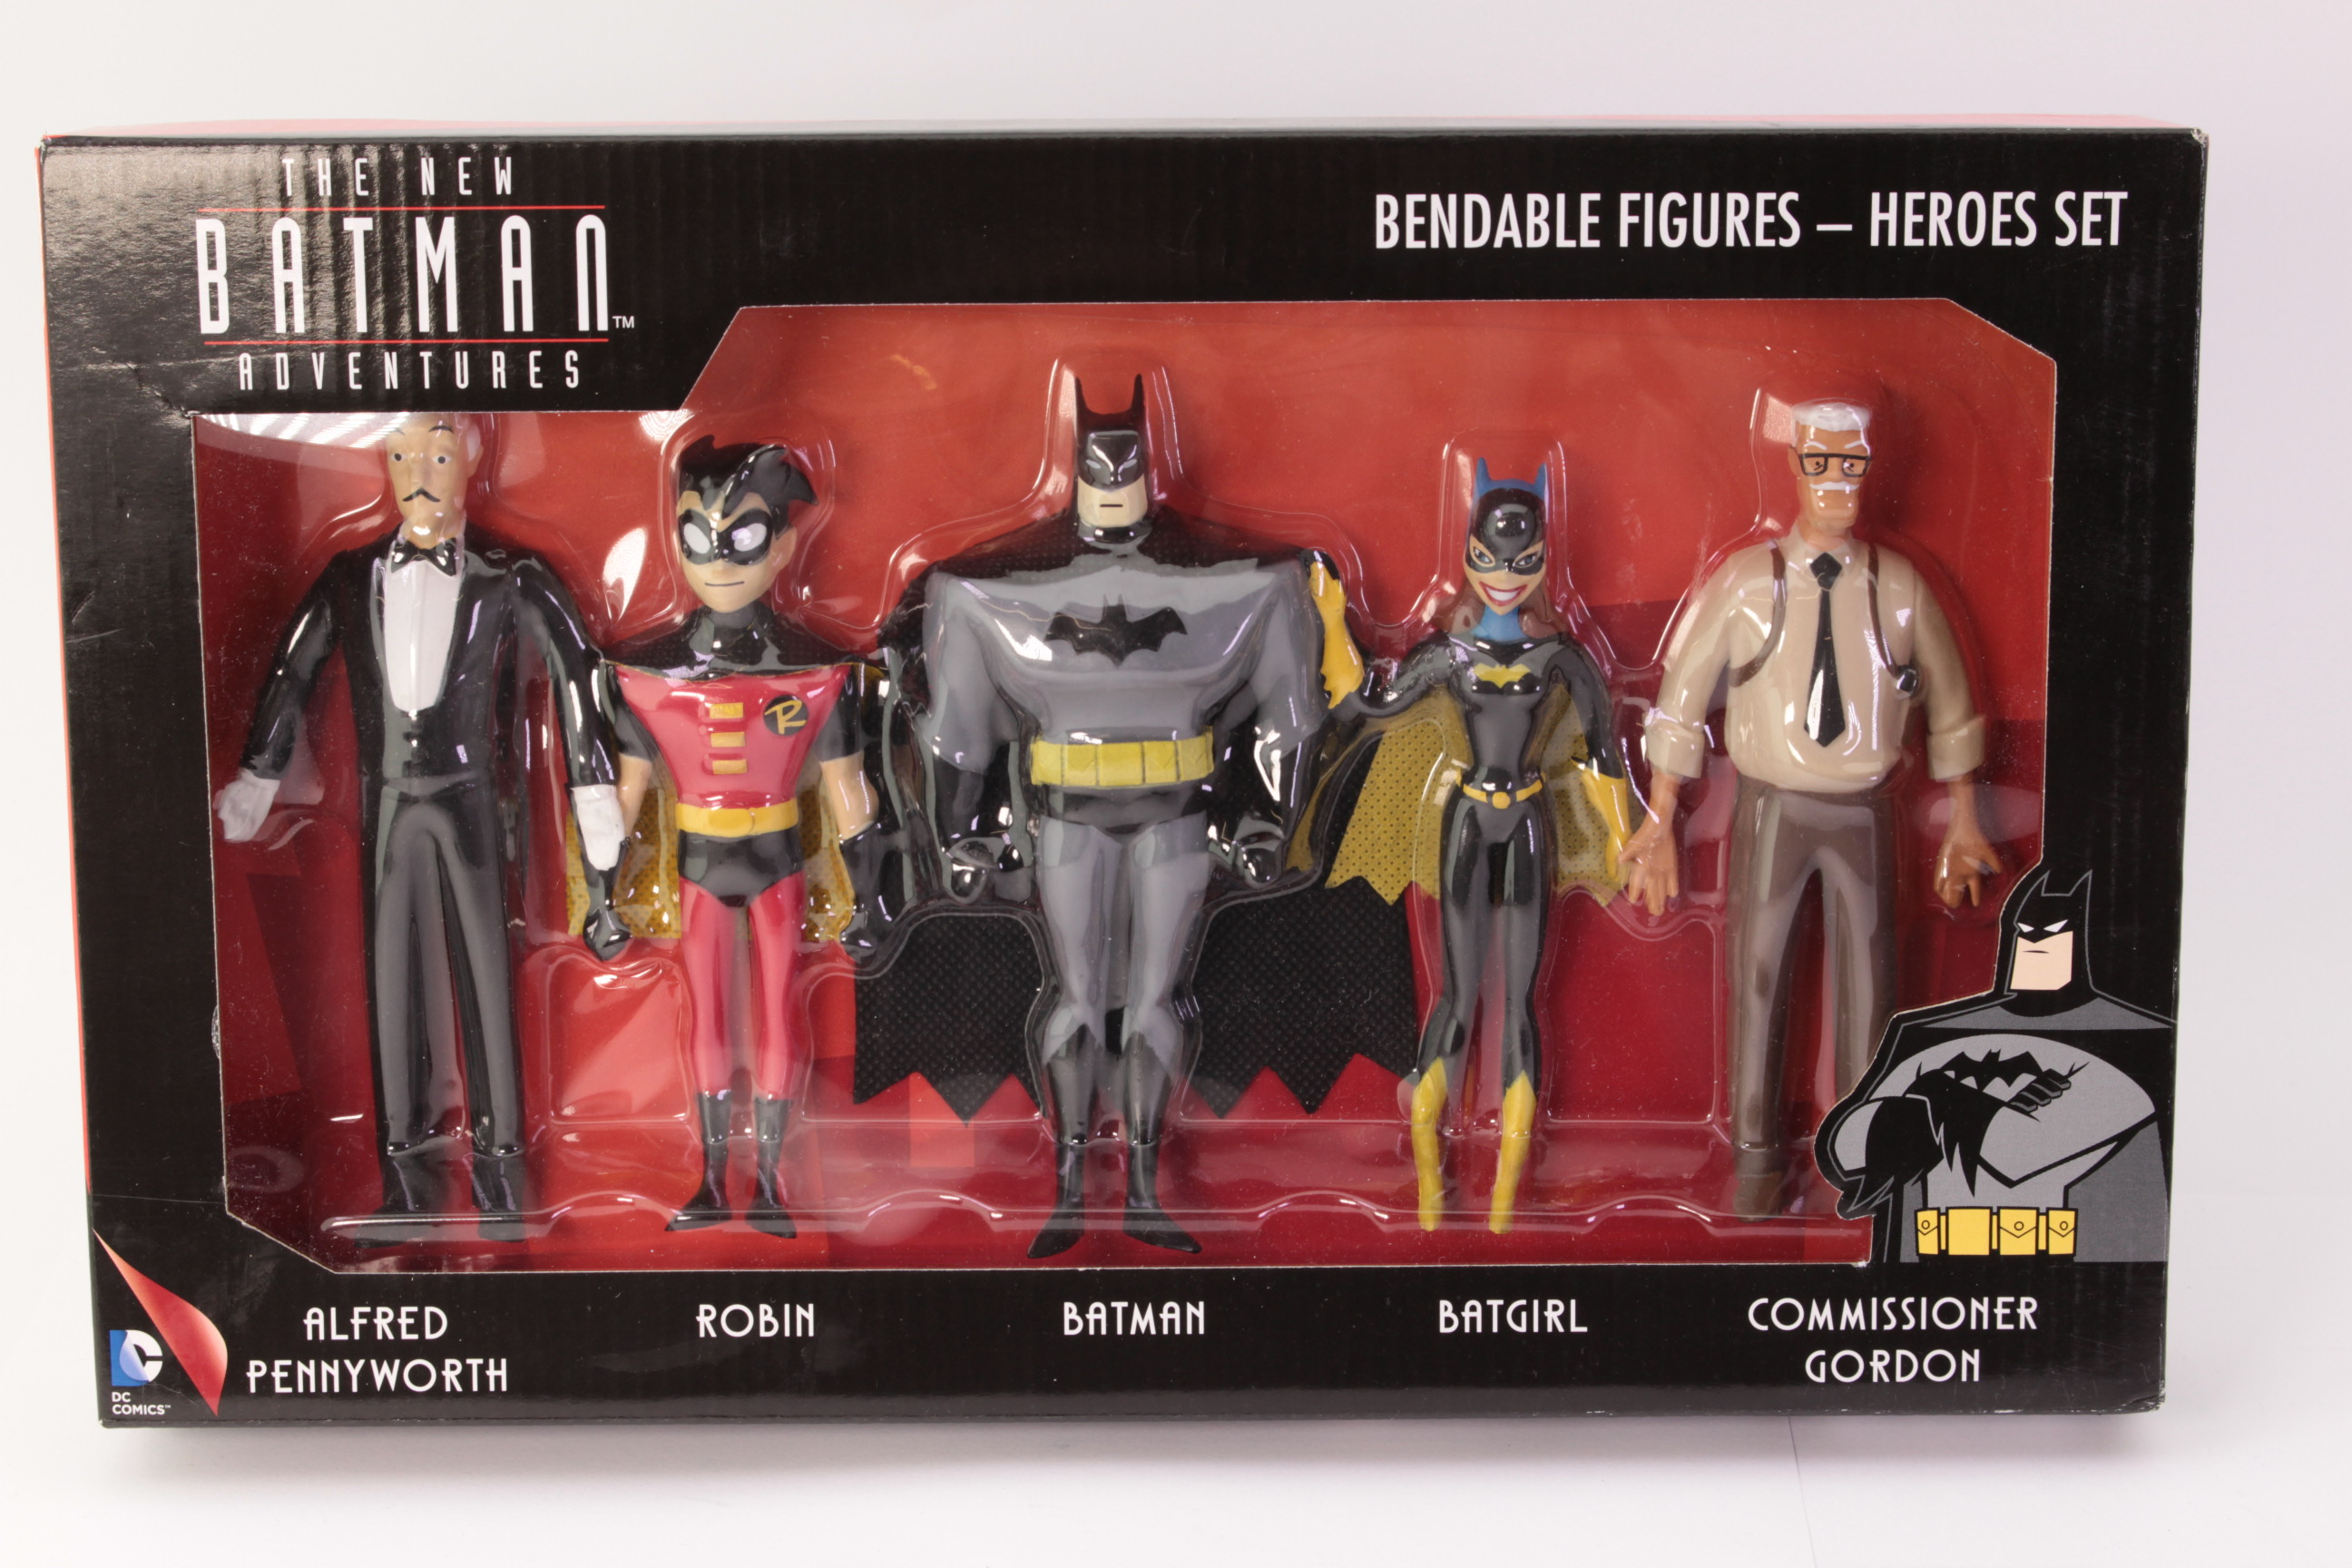 Picture Gallery for NJ Croce DC3940 Animated Heroes Set